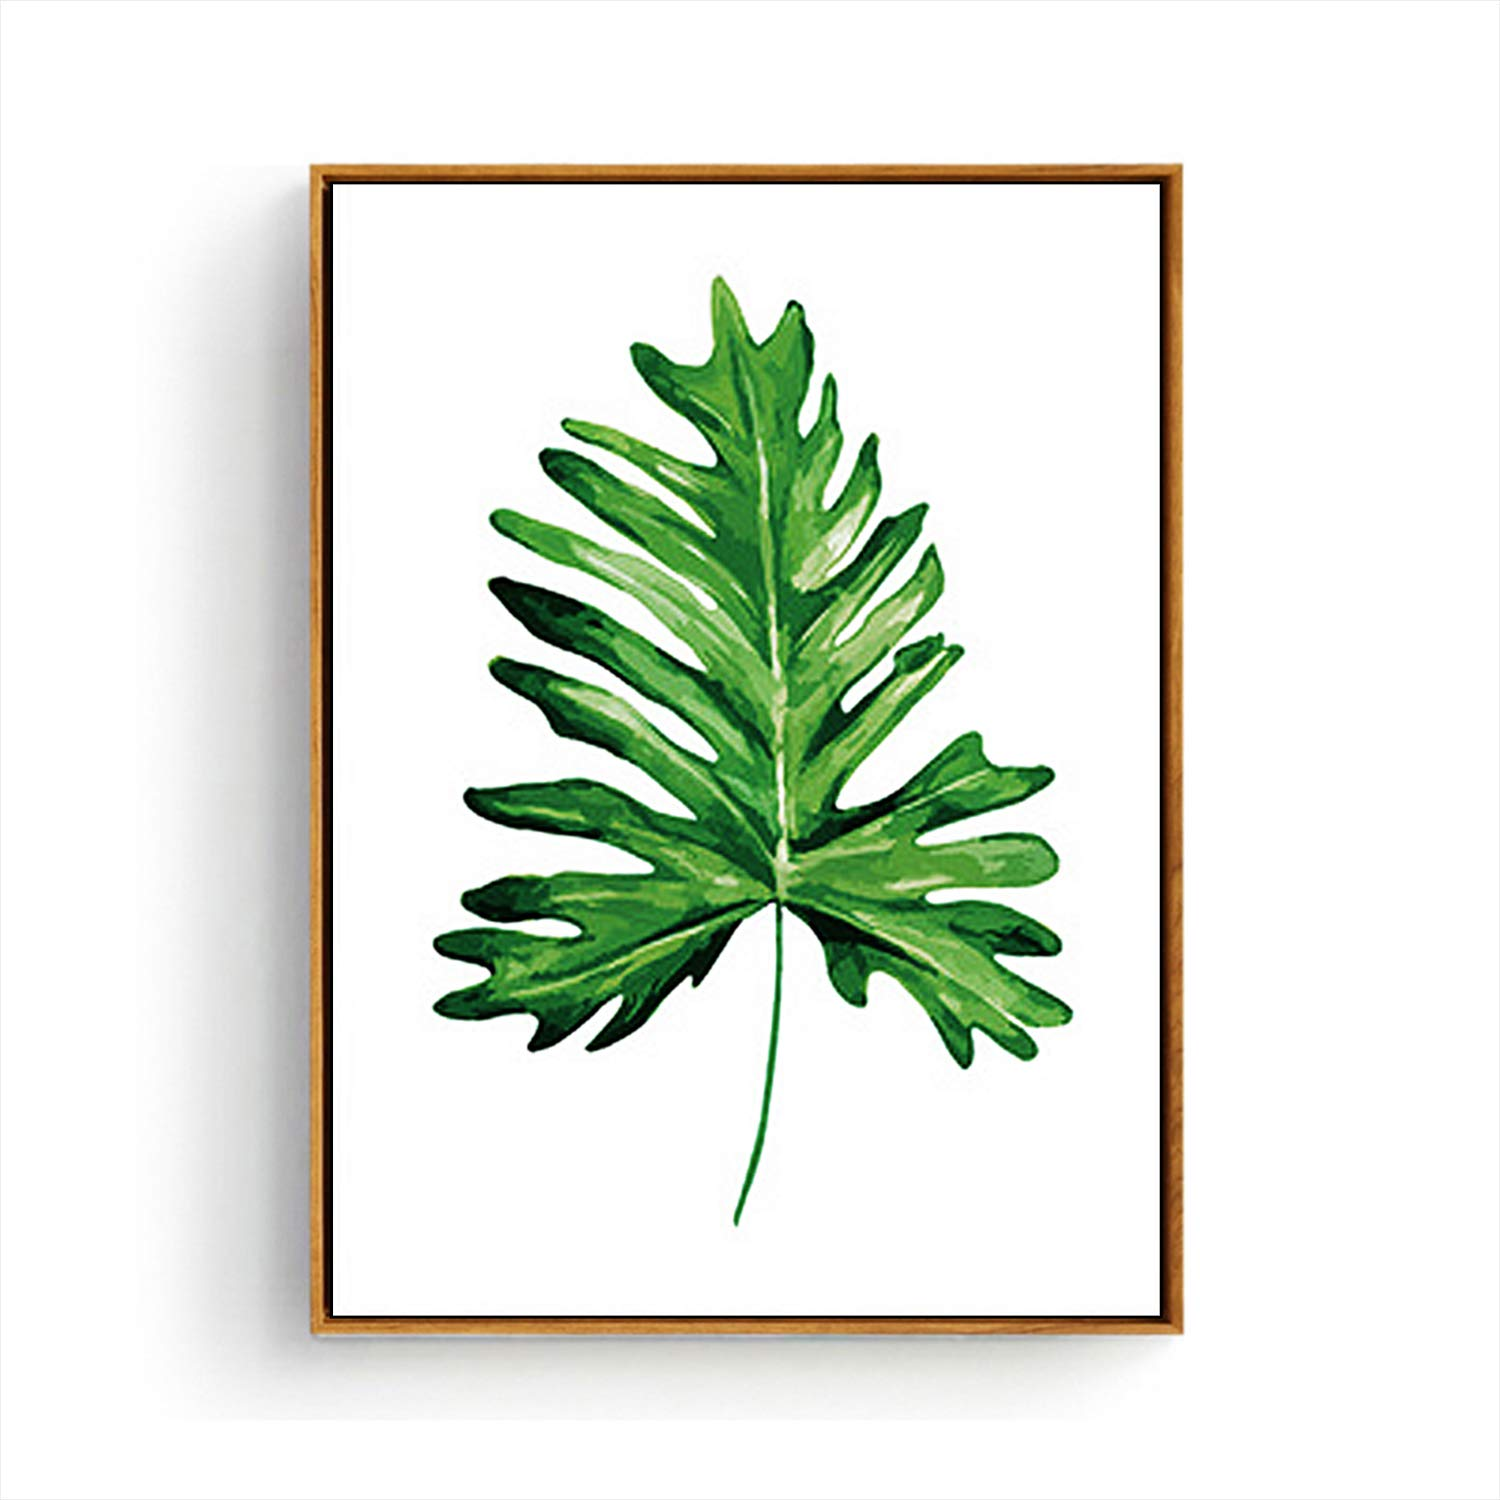 Hepix Canvas Wall Art Green Plants Tropical Leaves Wall Paintings Simple Botanical Print Framed Wall Pictures For Bedroom Bathroom Living Room Modern